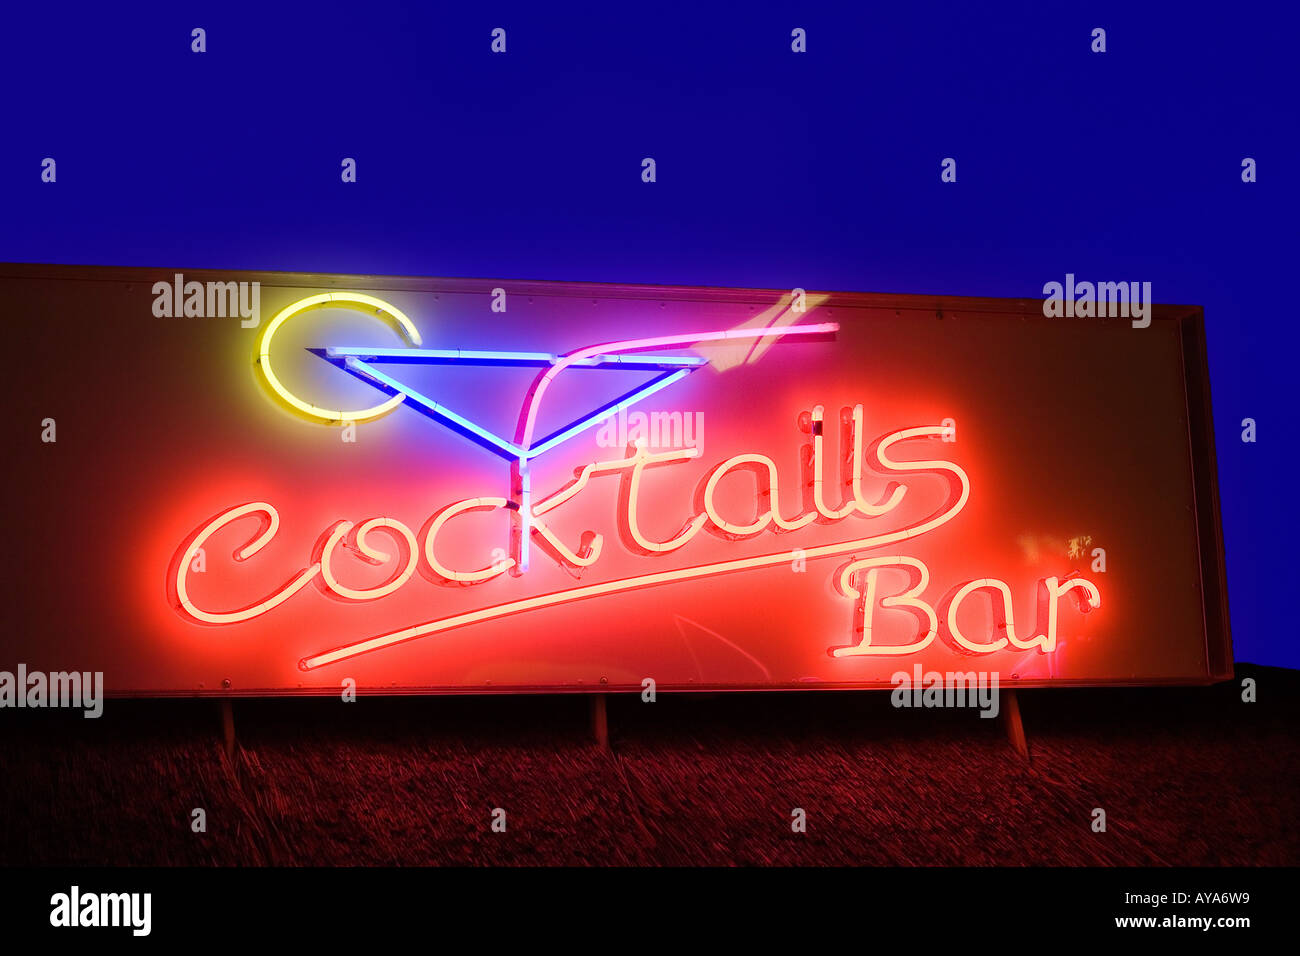 Luminous advertising for a cocktails bar - Stock Image